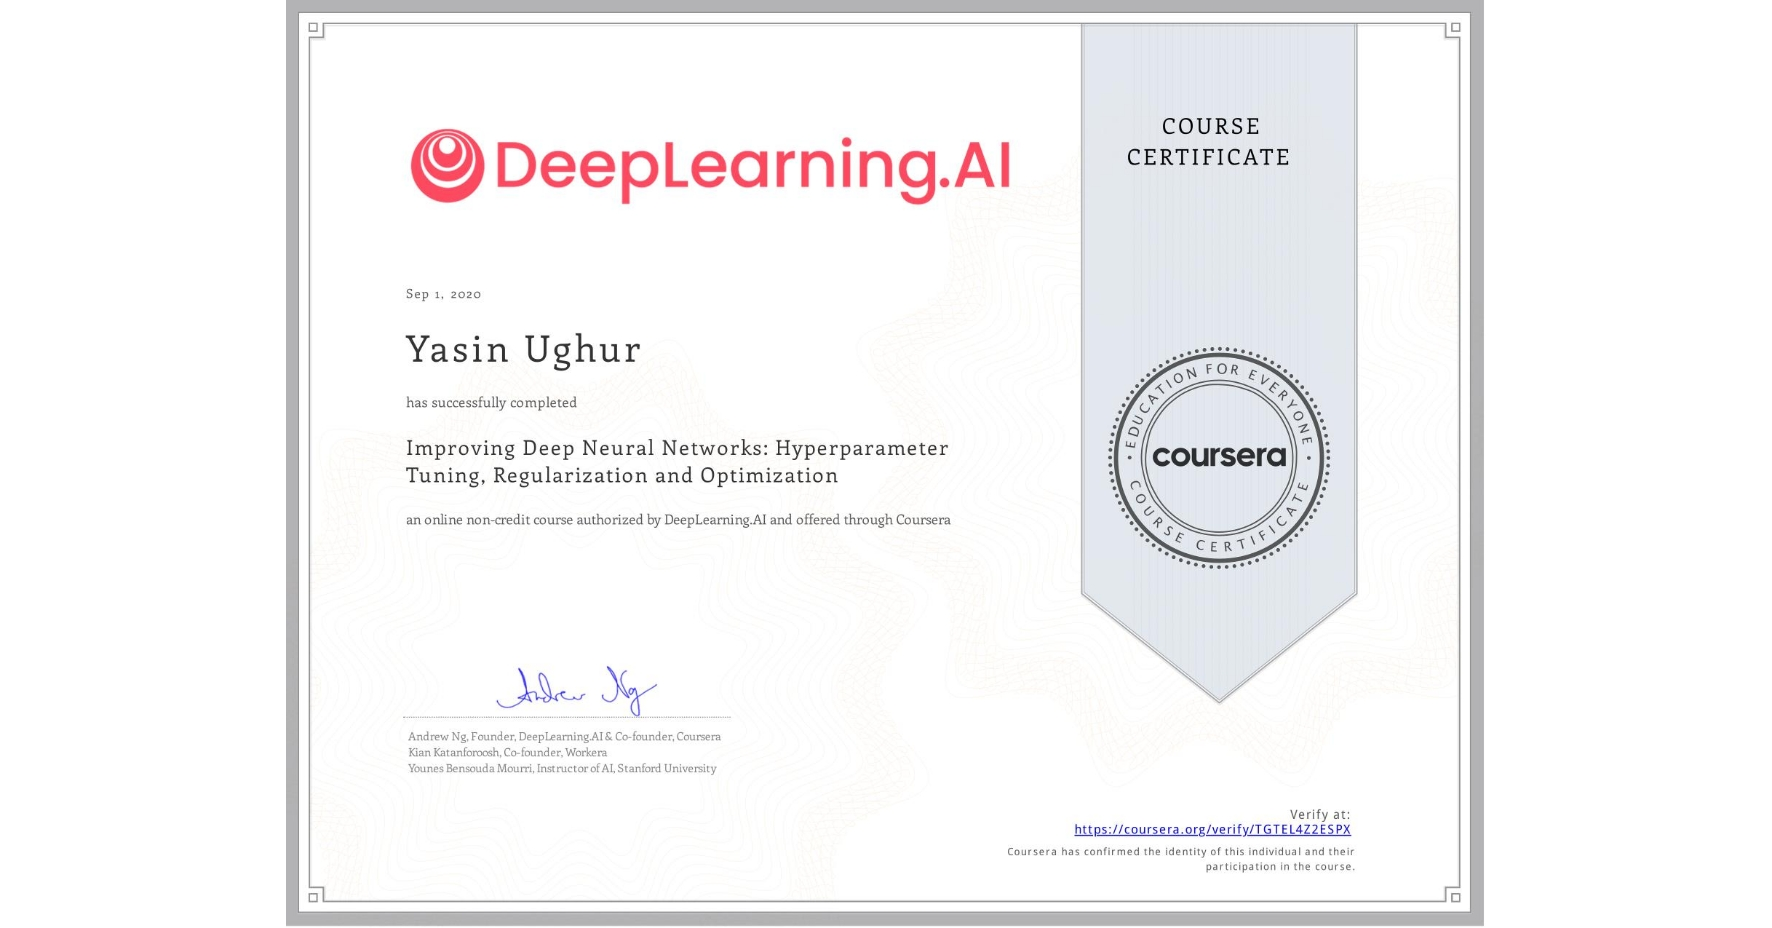 View certificate for Yasin Ughur, Improving Deep Neural Networks: Hyperparameter Tuning, Regularization and Optimization, an online non-credit course authorized by DeepLearning.AI and offered through Coursera